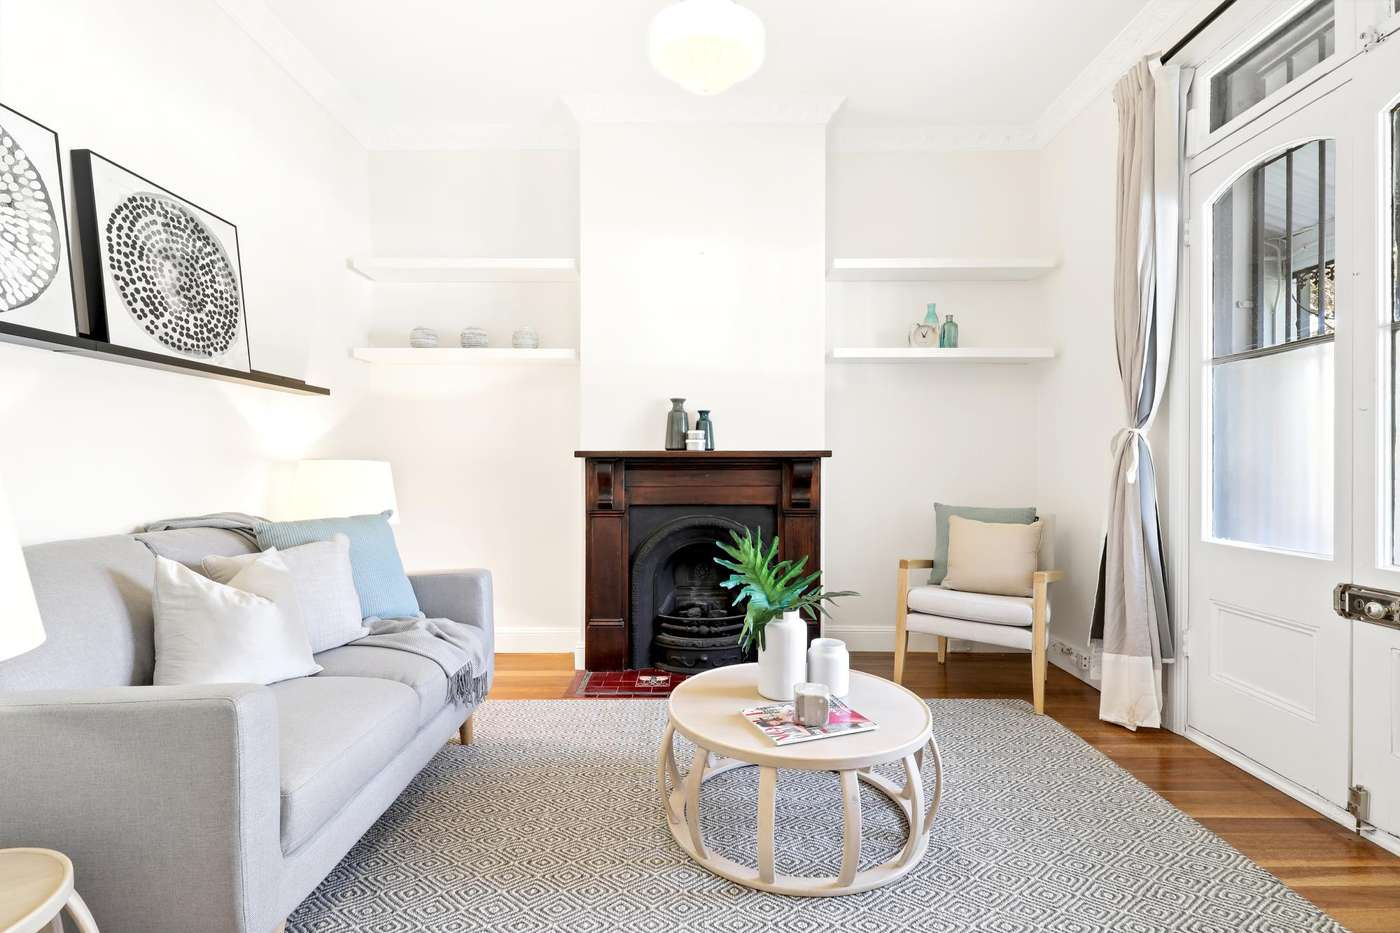 Main view of Homely house listing, 13 Wellington Street, Waterloo, NSW 2017